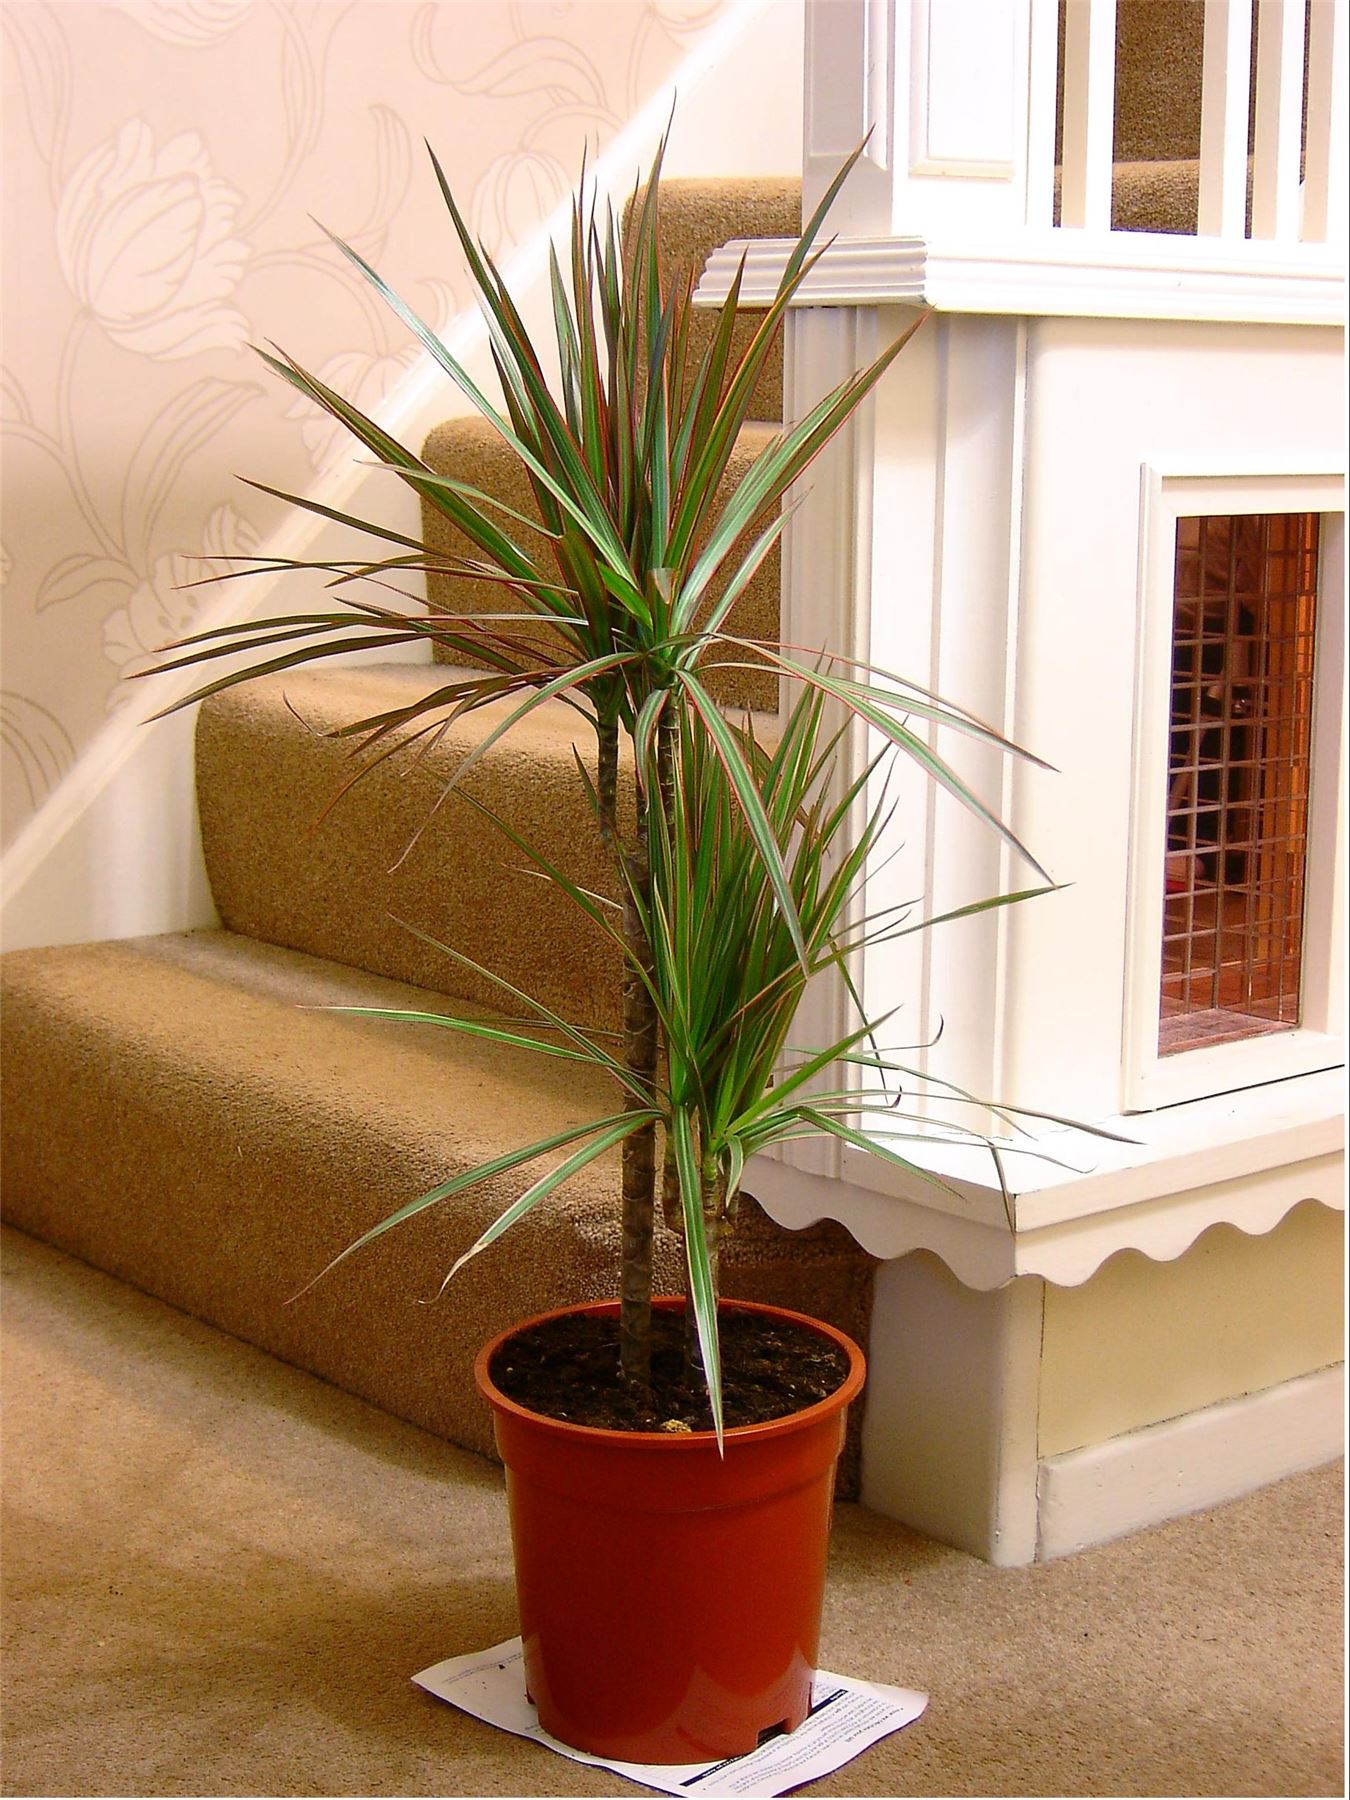 Floor Plants Indoor 1popular Evergreen Indoor House Plant Pot Office Home